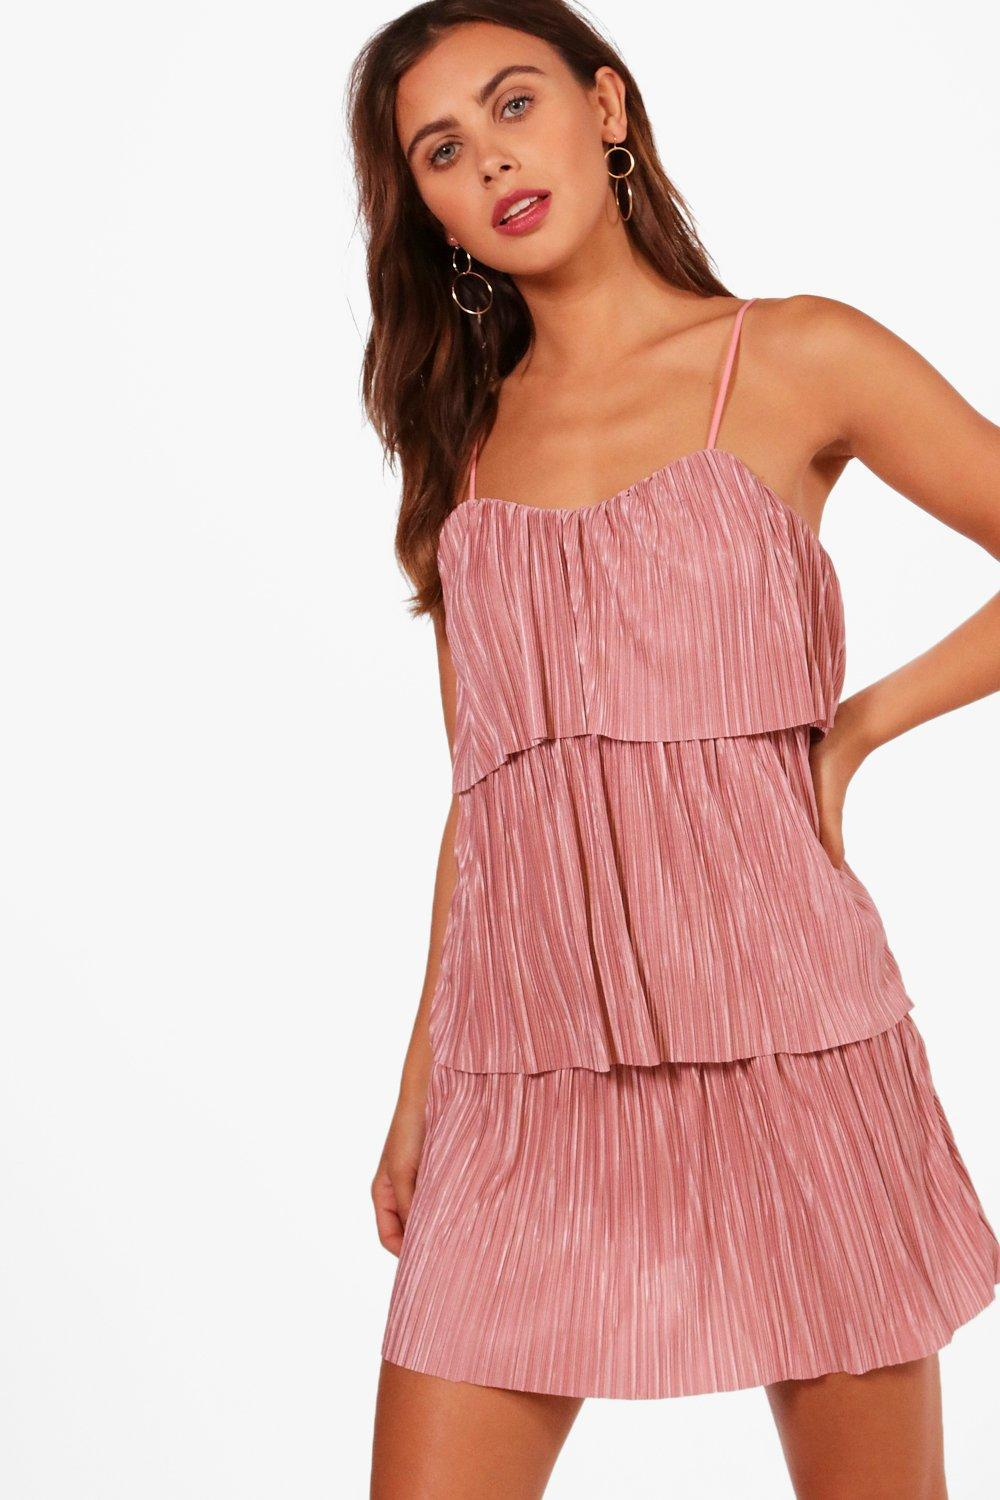 ac3dacd95fb7 Boohoo Petite Fiona Tiered Pleated Dress in Pink - Lyst